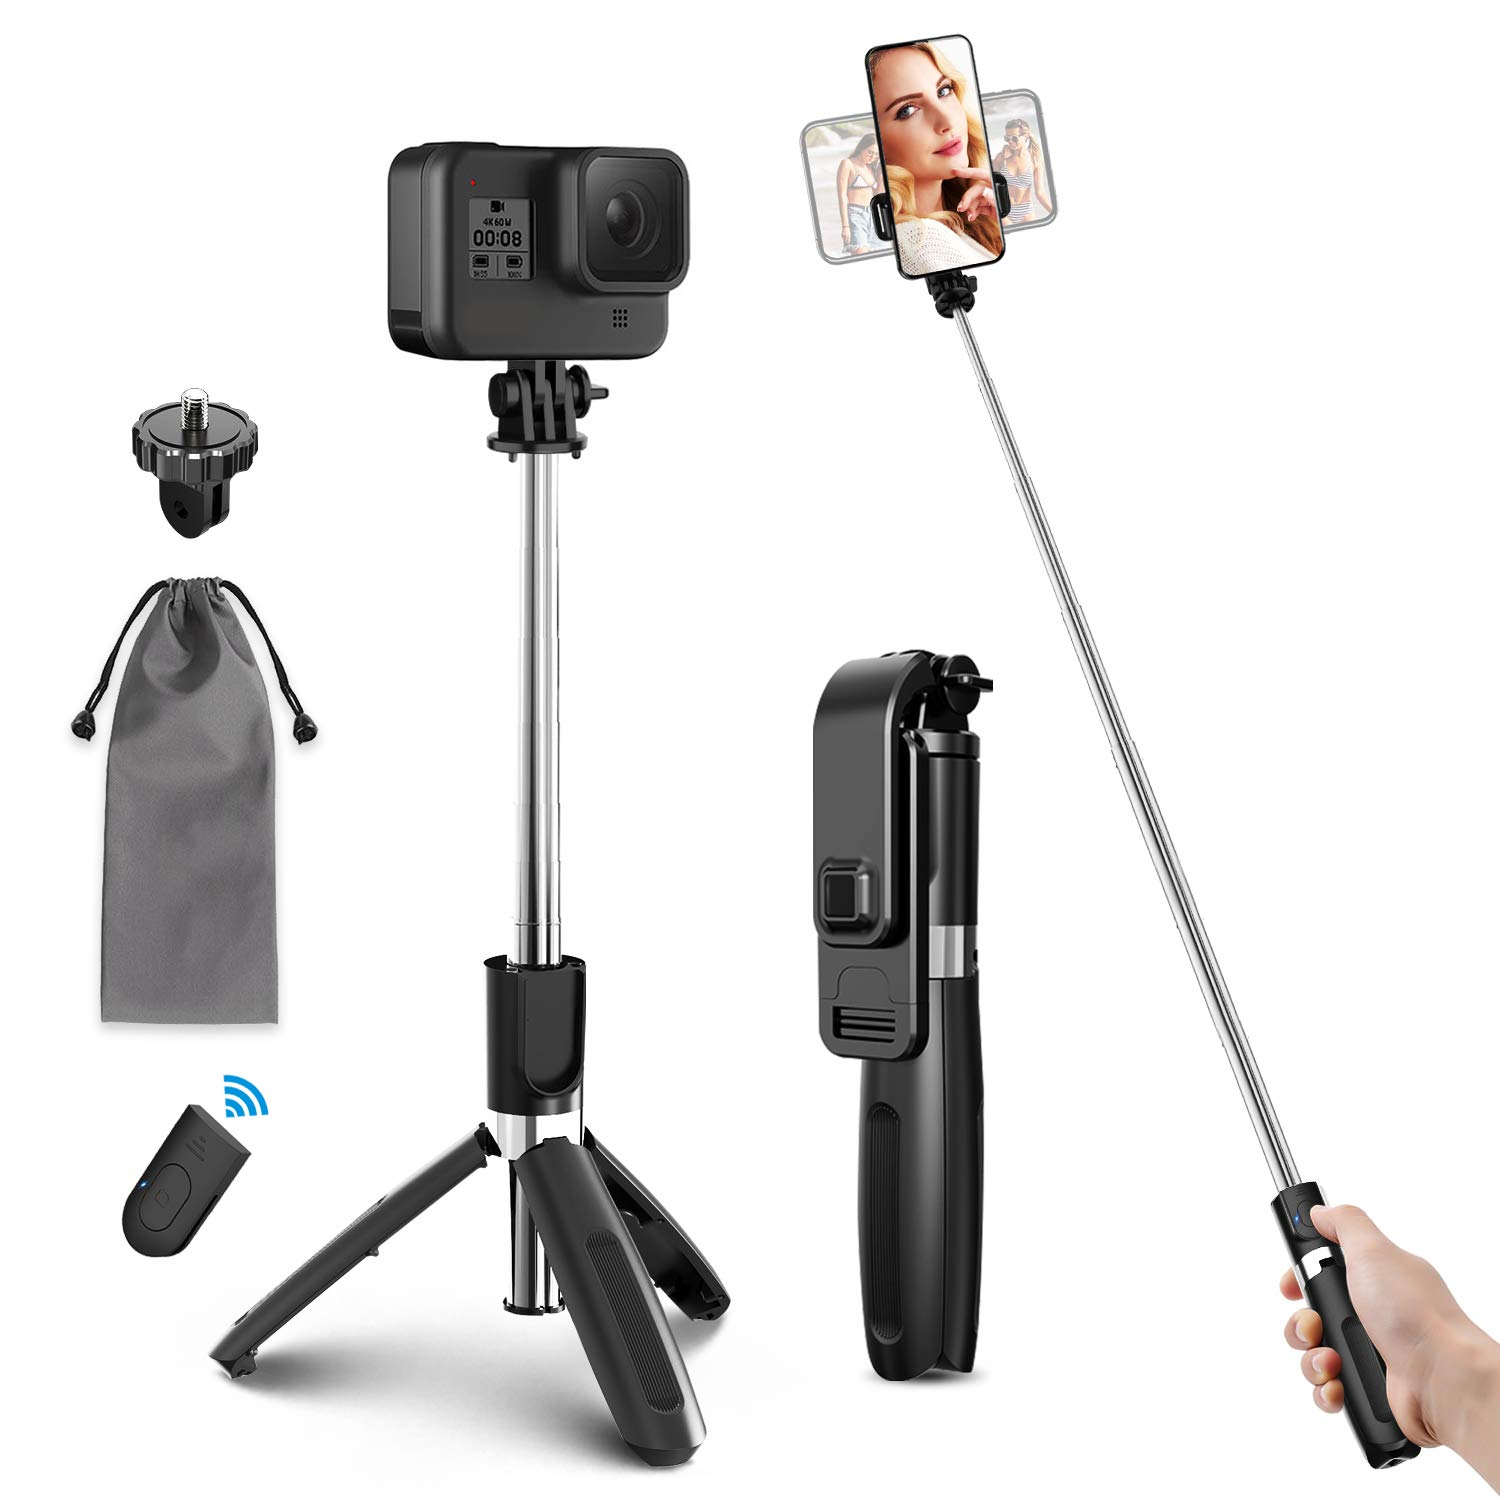 ELEGIANT Selfie Stick Tripod 39.4 Inch Extendable Selfie Stick Tripod Stand with